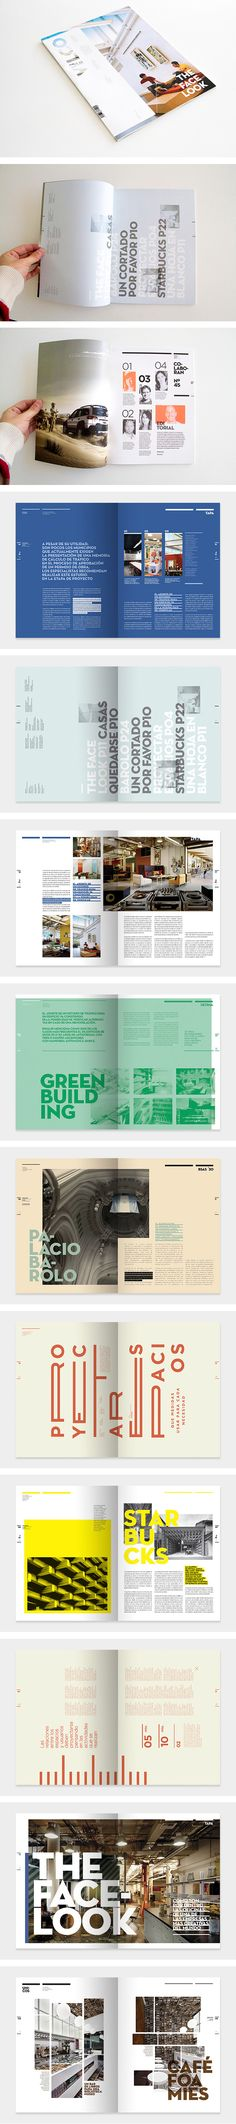 74 Best Graphics images in 2016 | Graph design, Page layout, Print